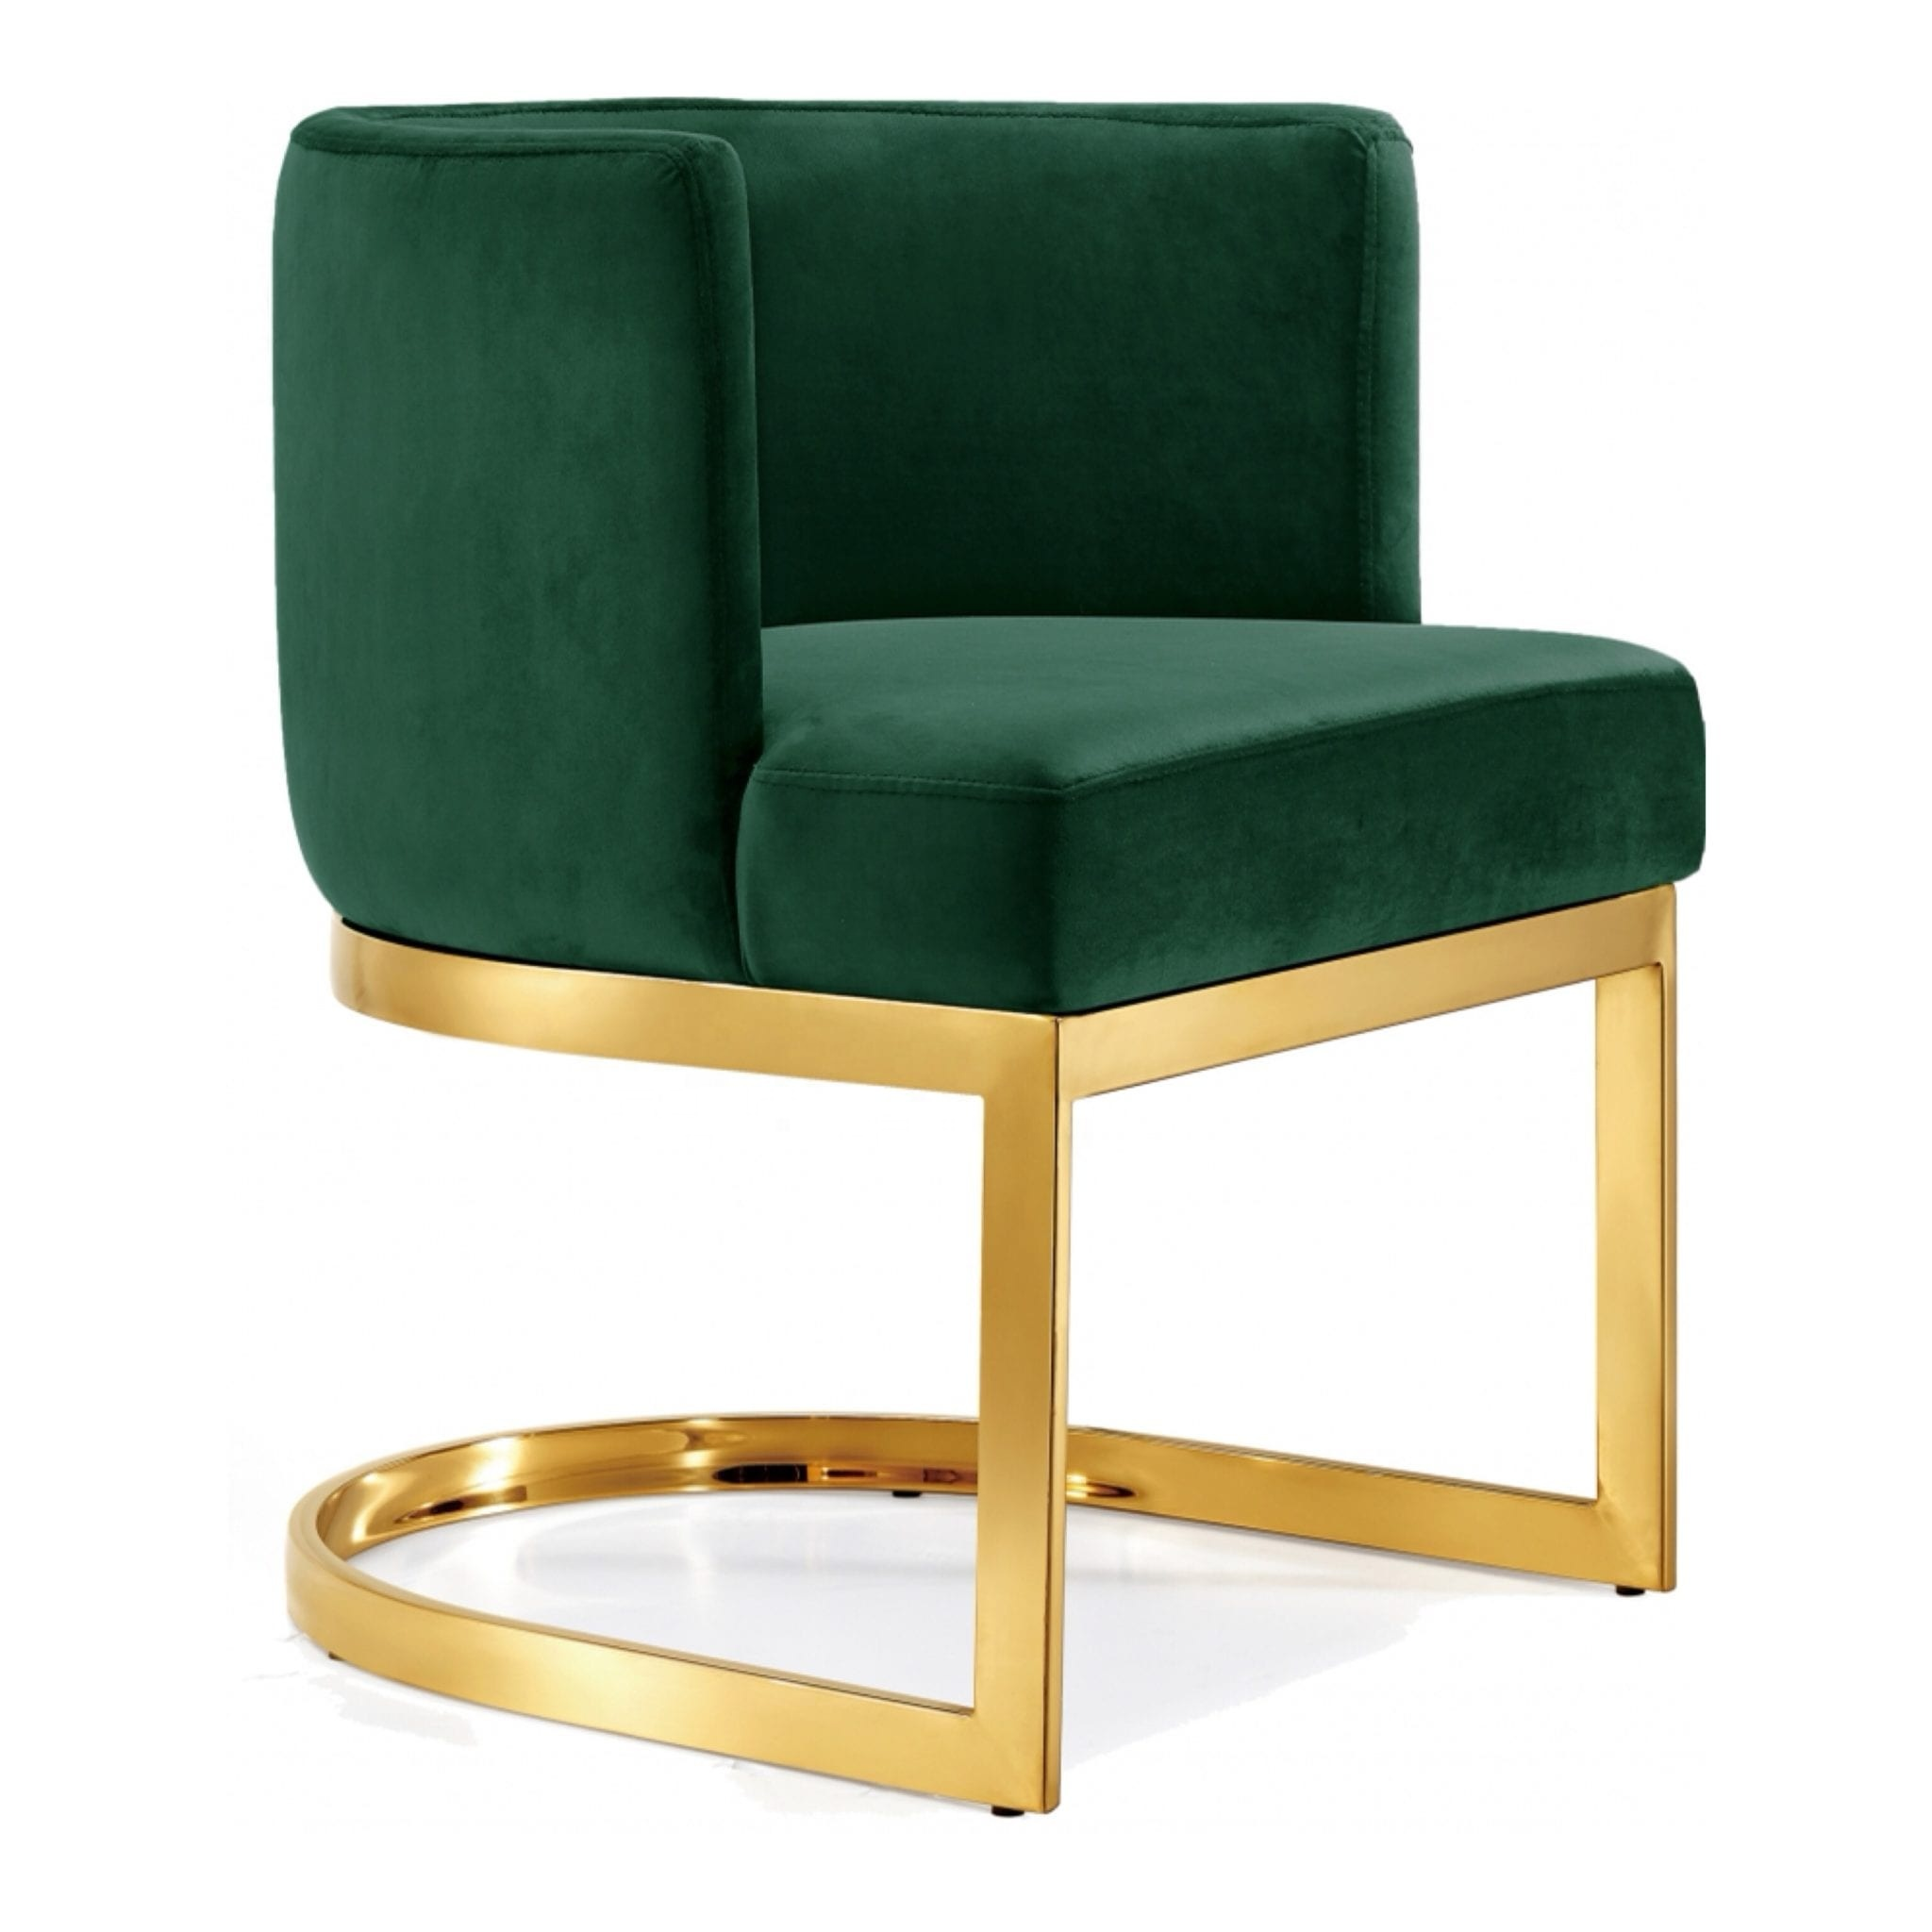 Modern Stainless Steel Upholstered Lounge Armrest Dining Chair In Gold